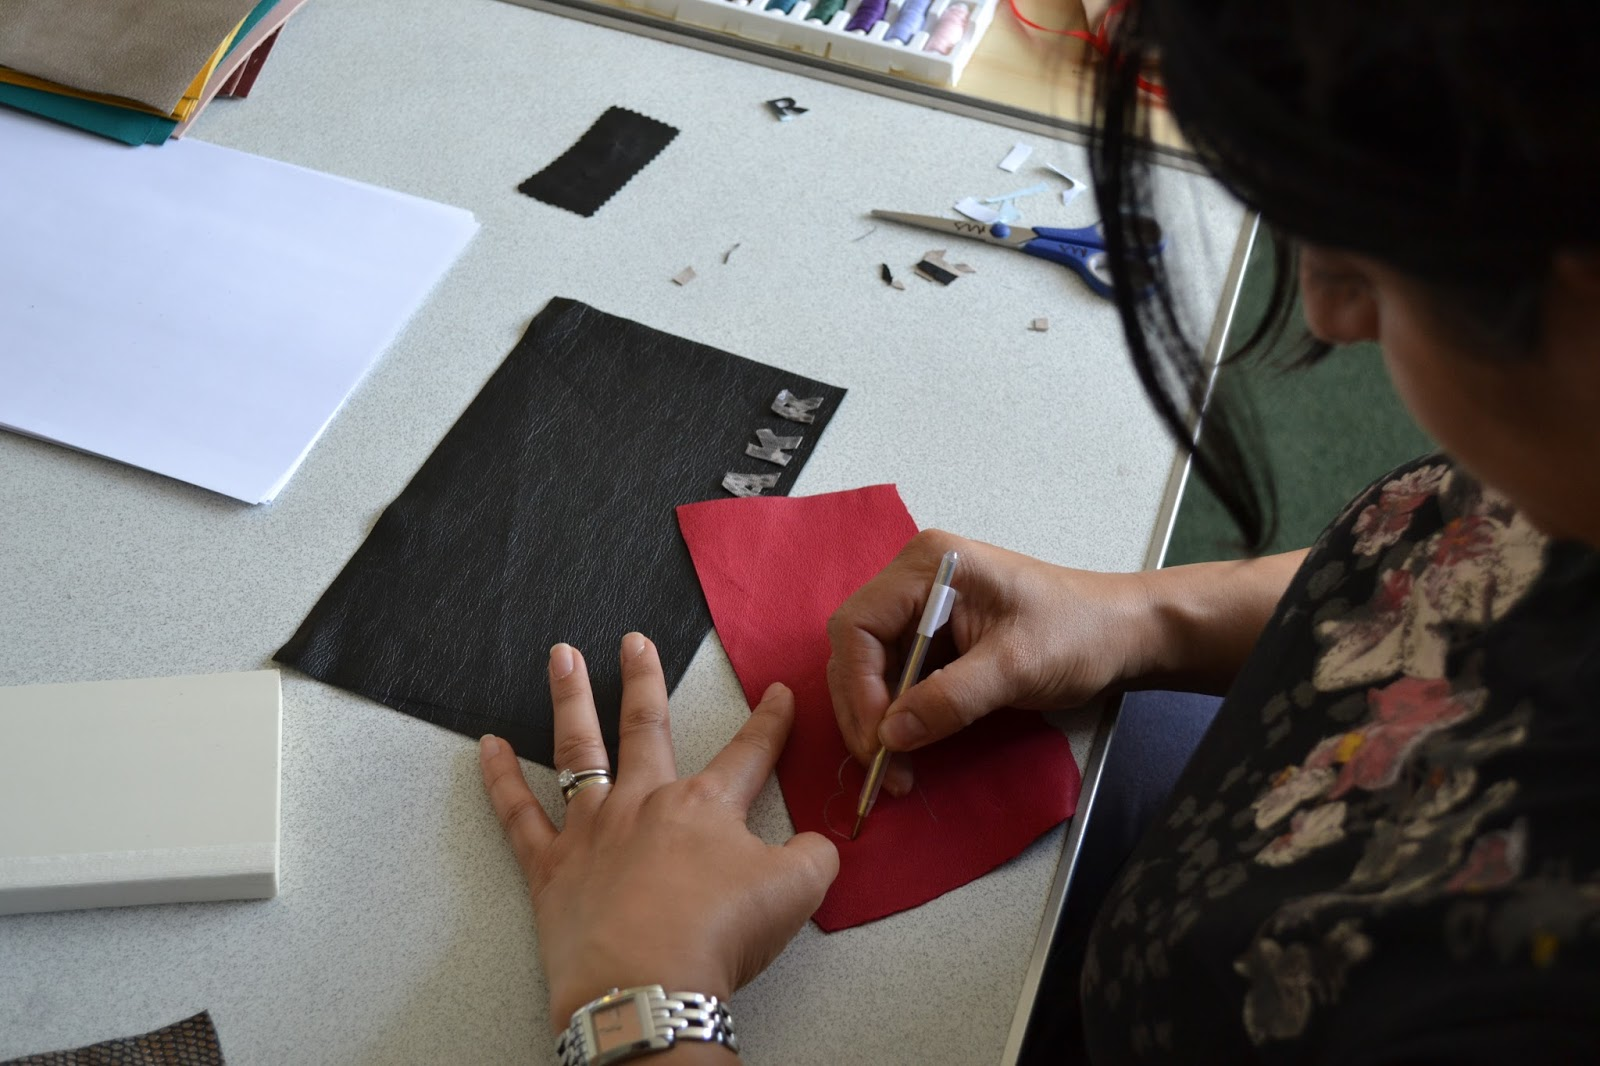 Meloleather Personalised Leather Book Workshop London 3/8/13